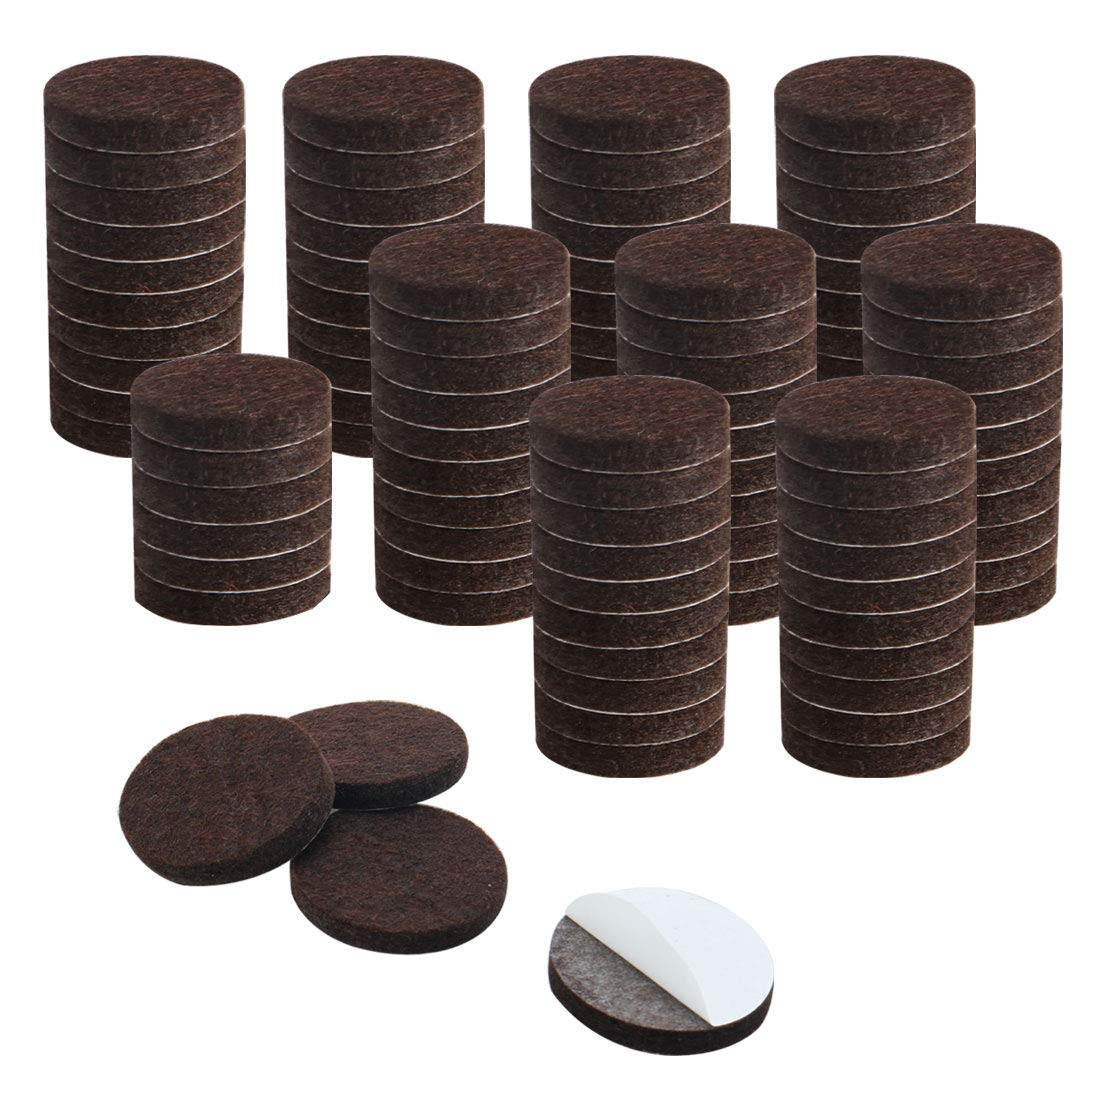 uxcell 100pcs Furniture Felt Pads Round 1 1/4 inches Self-stick Non-slip Anti-scratch Pads for Cabinet Chair Feet Leg Protector Brown